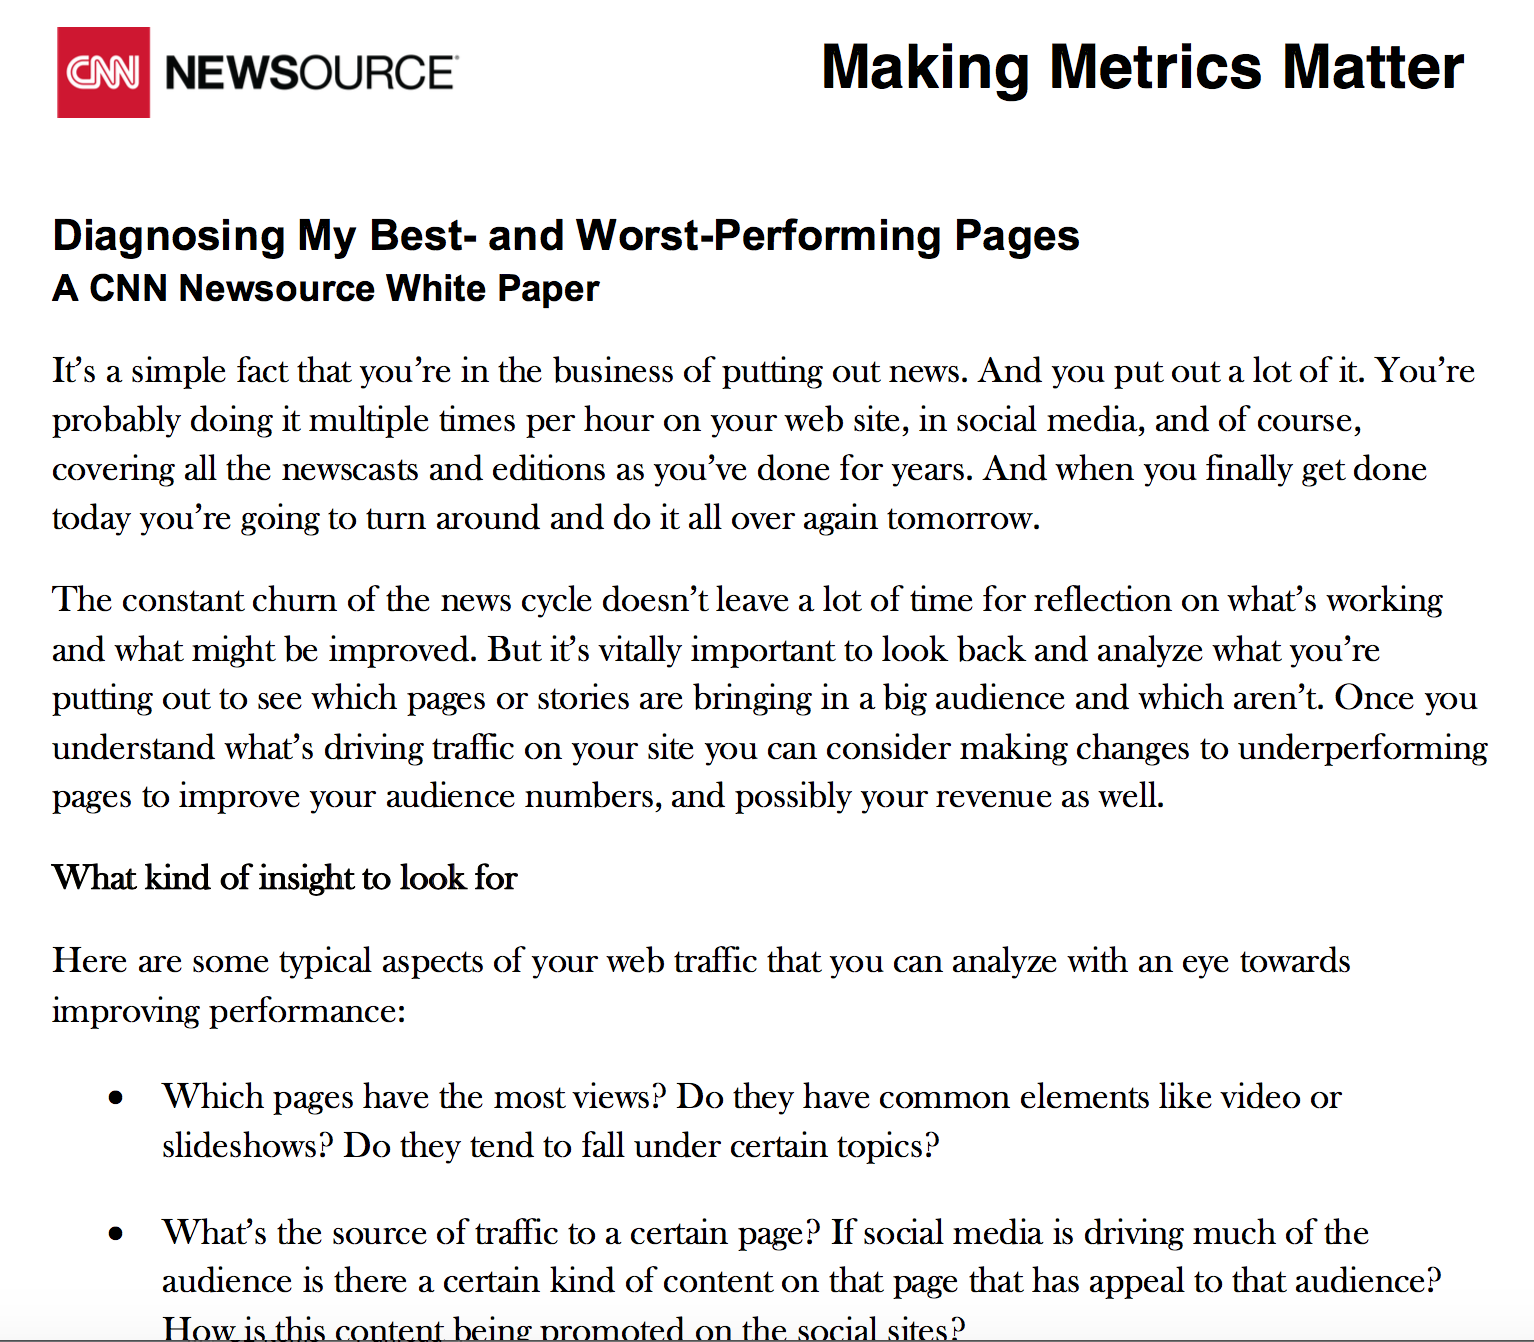 Diagnosing your website's best and worst pages